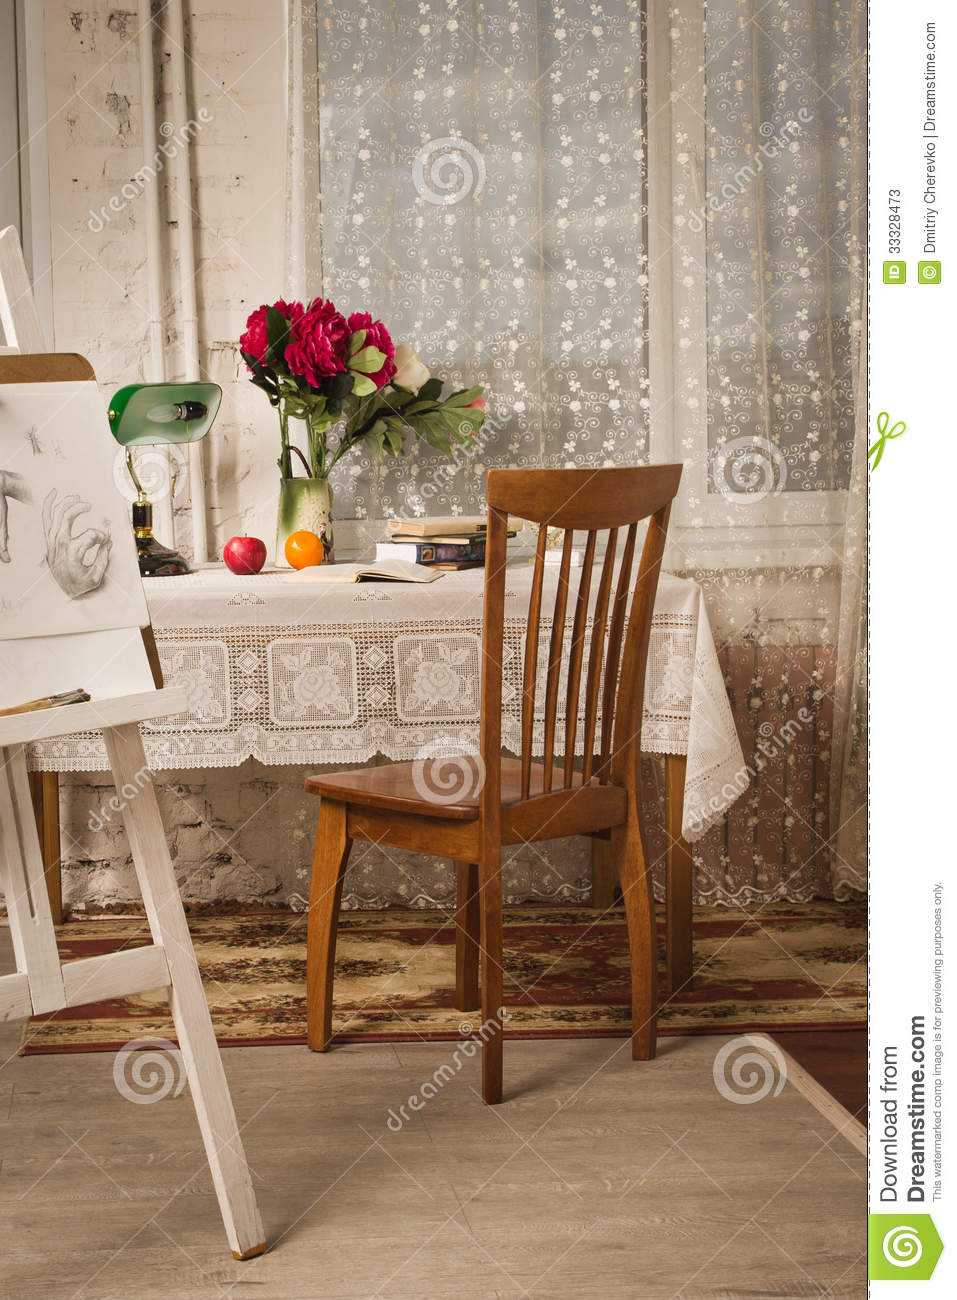 Fashioned Living Room Furniture: Vintage Living Room With Old Fashioned Table And Chair